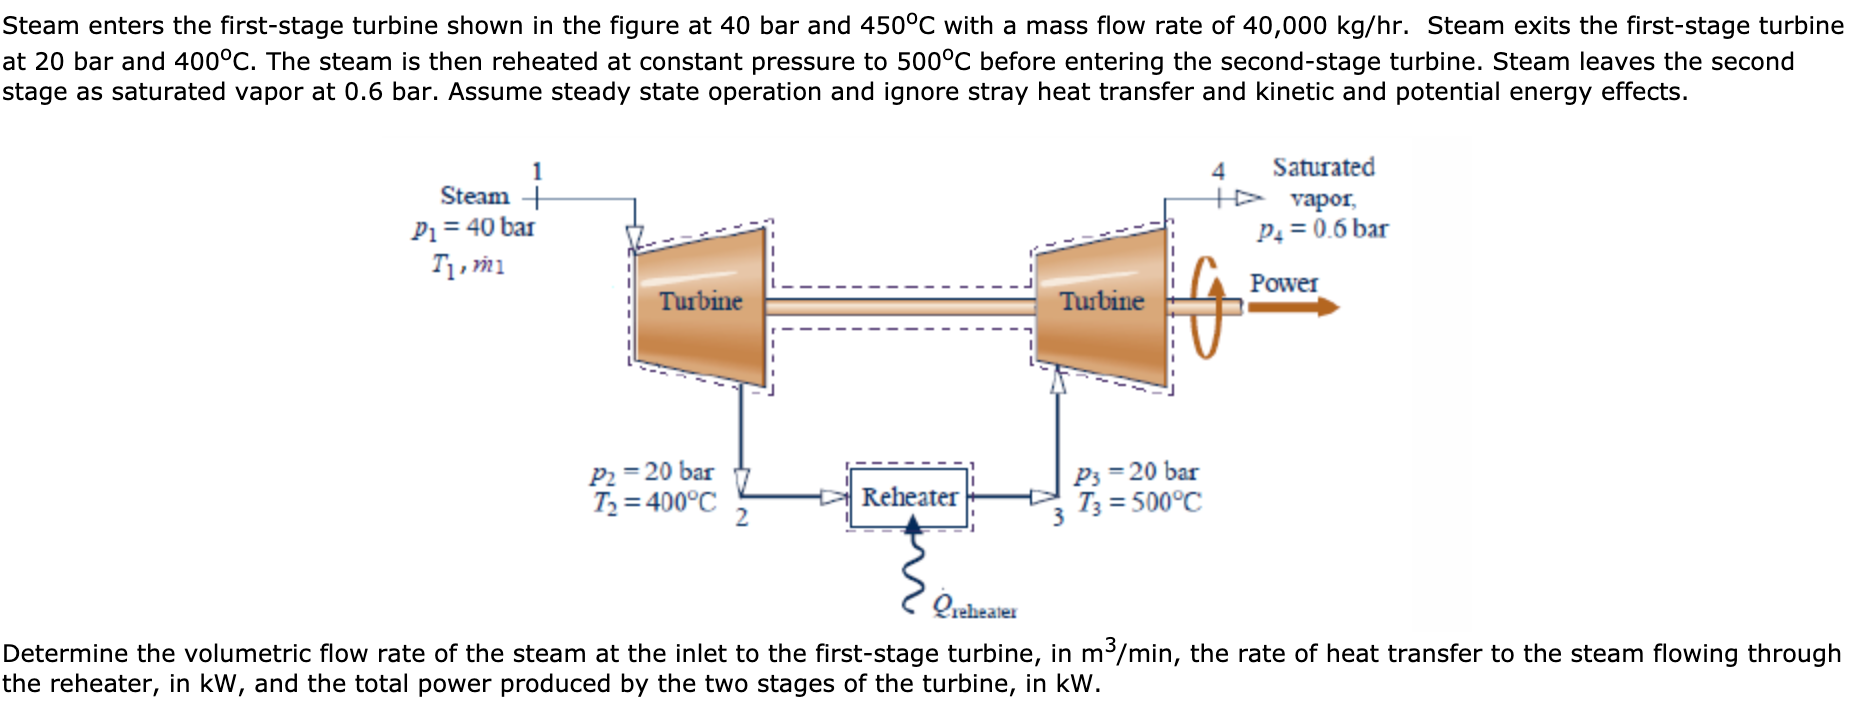 Steam enters the first-stage turbine shown in the figure at 40 bar and 4500C with a mass flow rate of 40,000 kg/hr. Steam exits the first-stage turbine at 20 bar and 400°C. The steam is then reheated at constant pressure to 500°C before entering the second-stage turbine. Steam leaves the second stage as saturated vapor at 0.6 bar. Assume steady state operation and ignore stray heat transfer and kinetic and potential energy effects. Saturated Steam vapor P1 40 bar Tут P4= 0.6 bar Power Turbine Turbine P2 20 bar T2 400°C P3 20 bar T3 500°C Reheater Qrehealer Determine the volumetric flow rate of the steam at the inlet to the first-stage turbine, in m/min, the rate of heat transfer to the steam flowing through the reheater, in kW, and the total power produced by the two stages of the turbine, in kW.